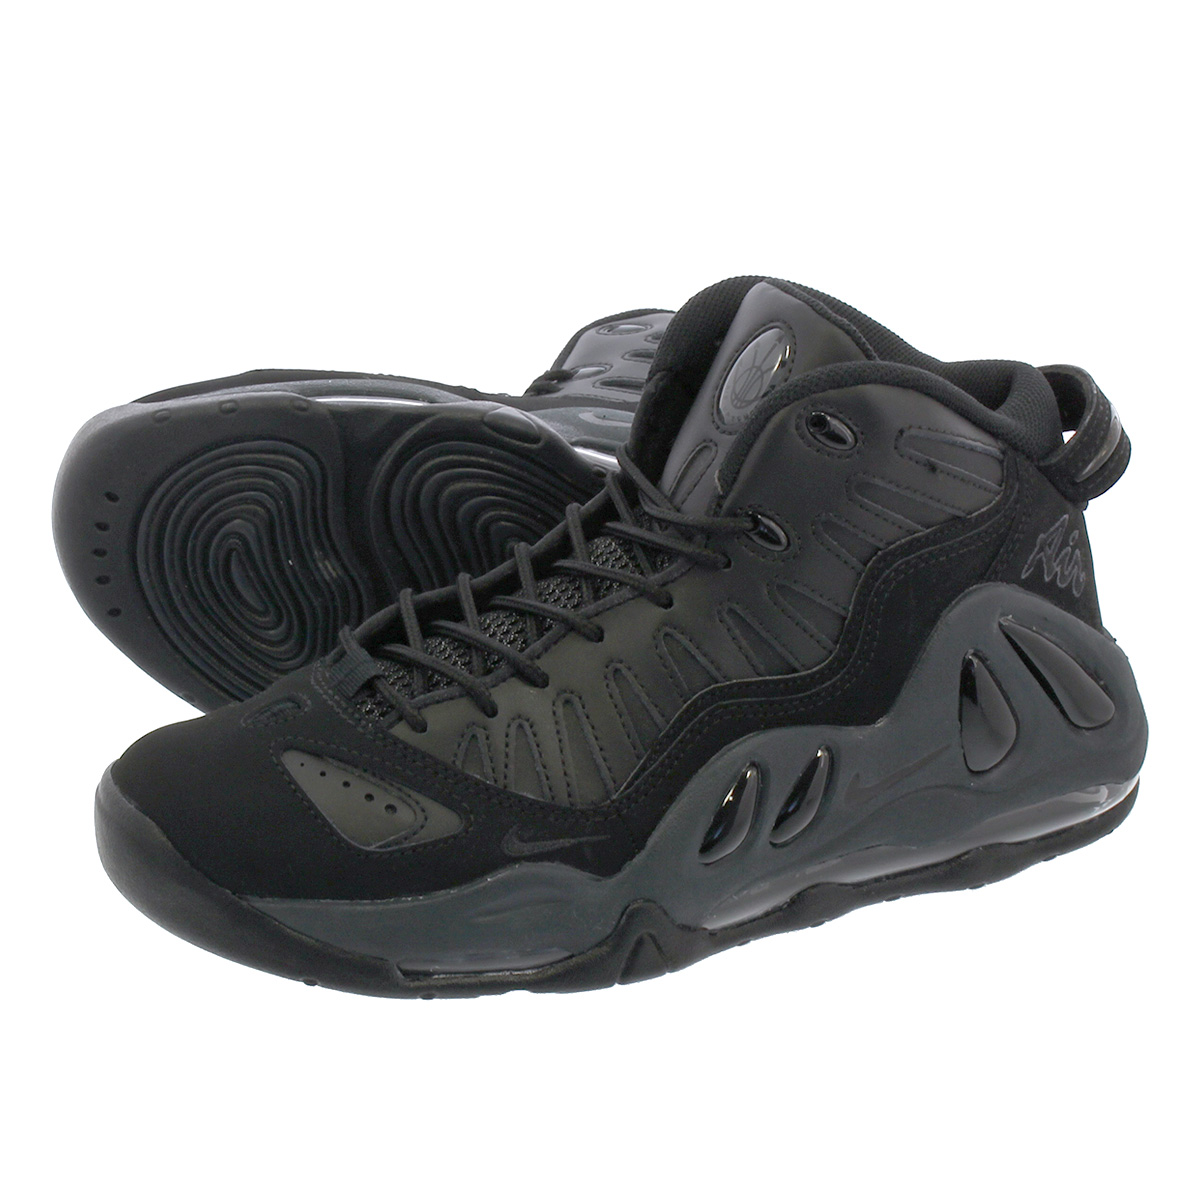 LOWTEX PLUS  NIKE AIR MAX UPTEMPO 97 Kie Ney AMAX up tempo 97 BLACK BLACK  ANTHRAICTE BLACK 399 c4d578f1e